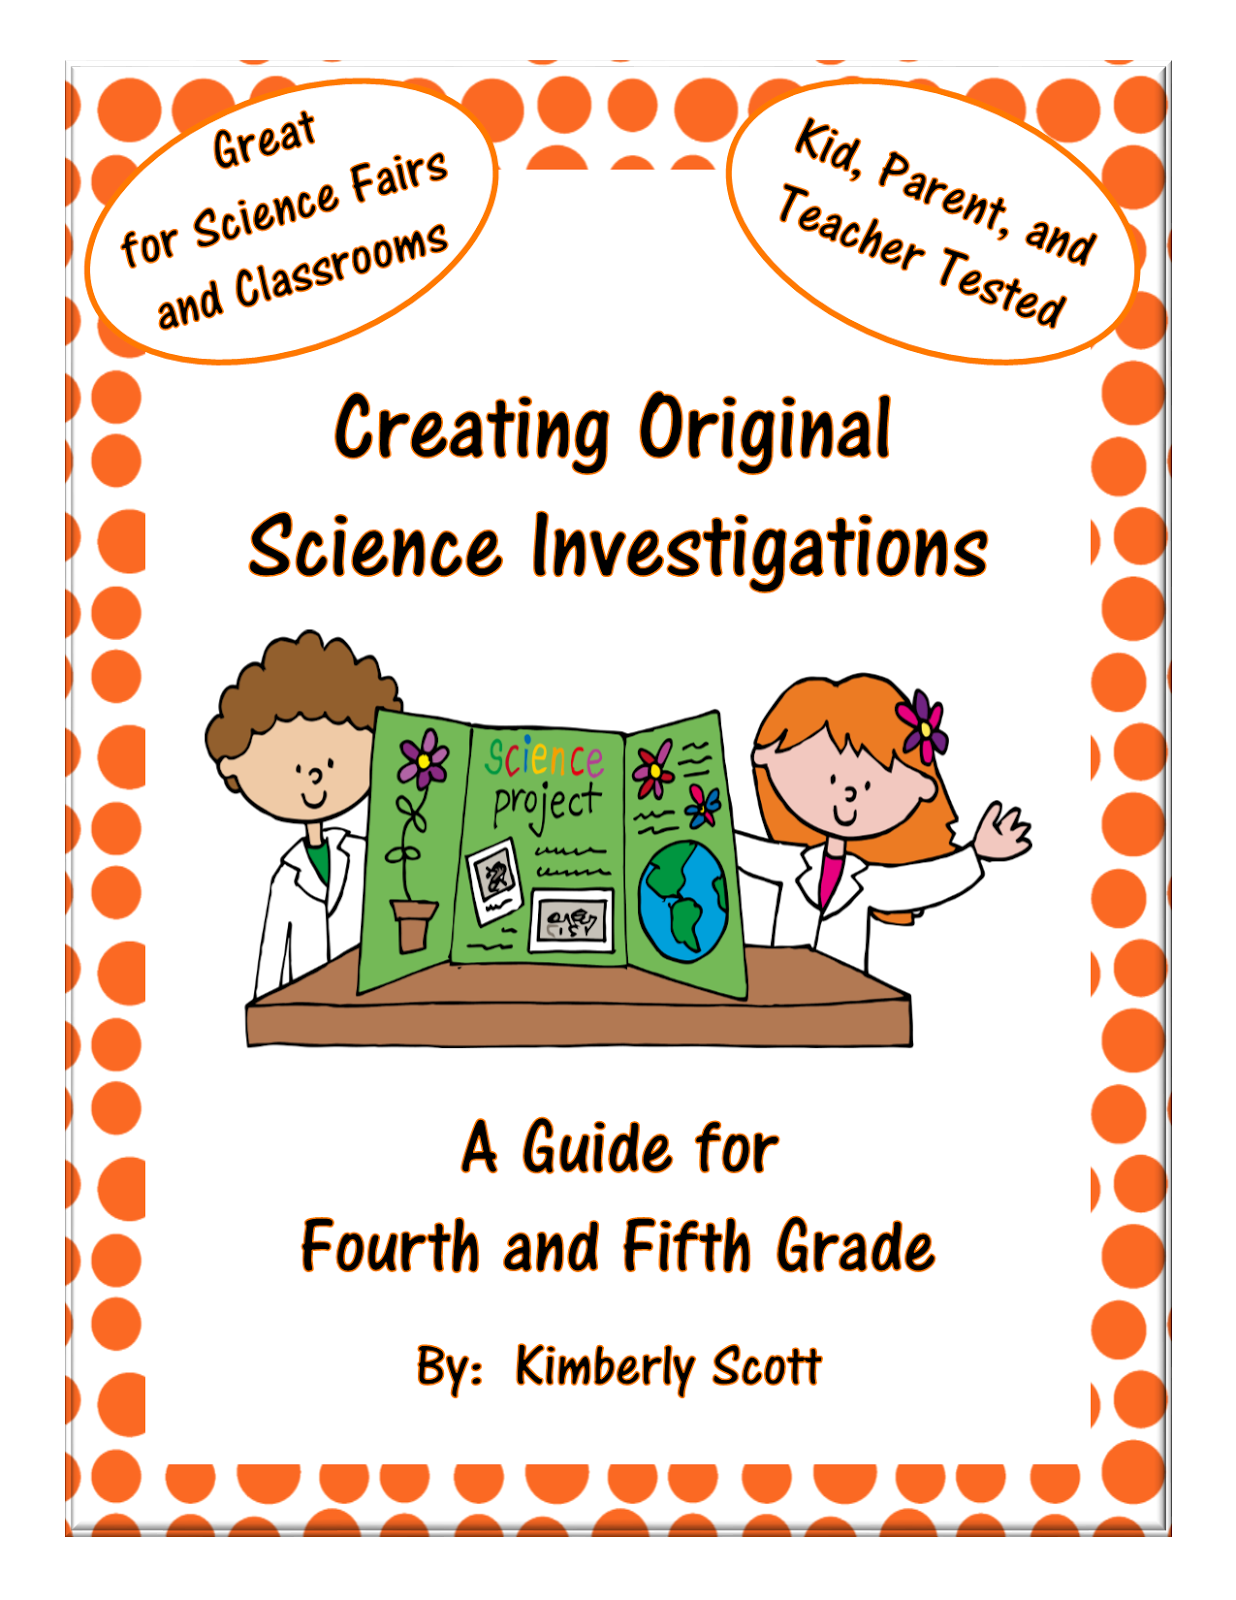 http://www.teacherspayteachers.com/Product/Creating-Original-Investigations-for-4th-and-5th-Grade-Science-Fairs-and-More-1211251